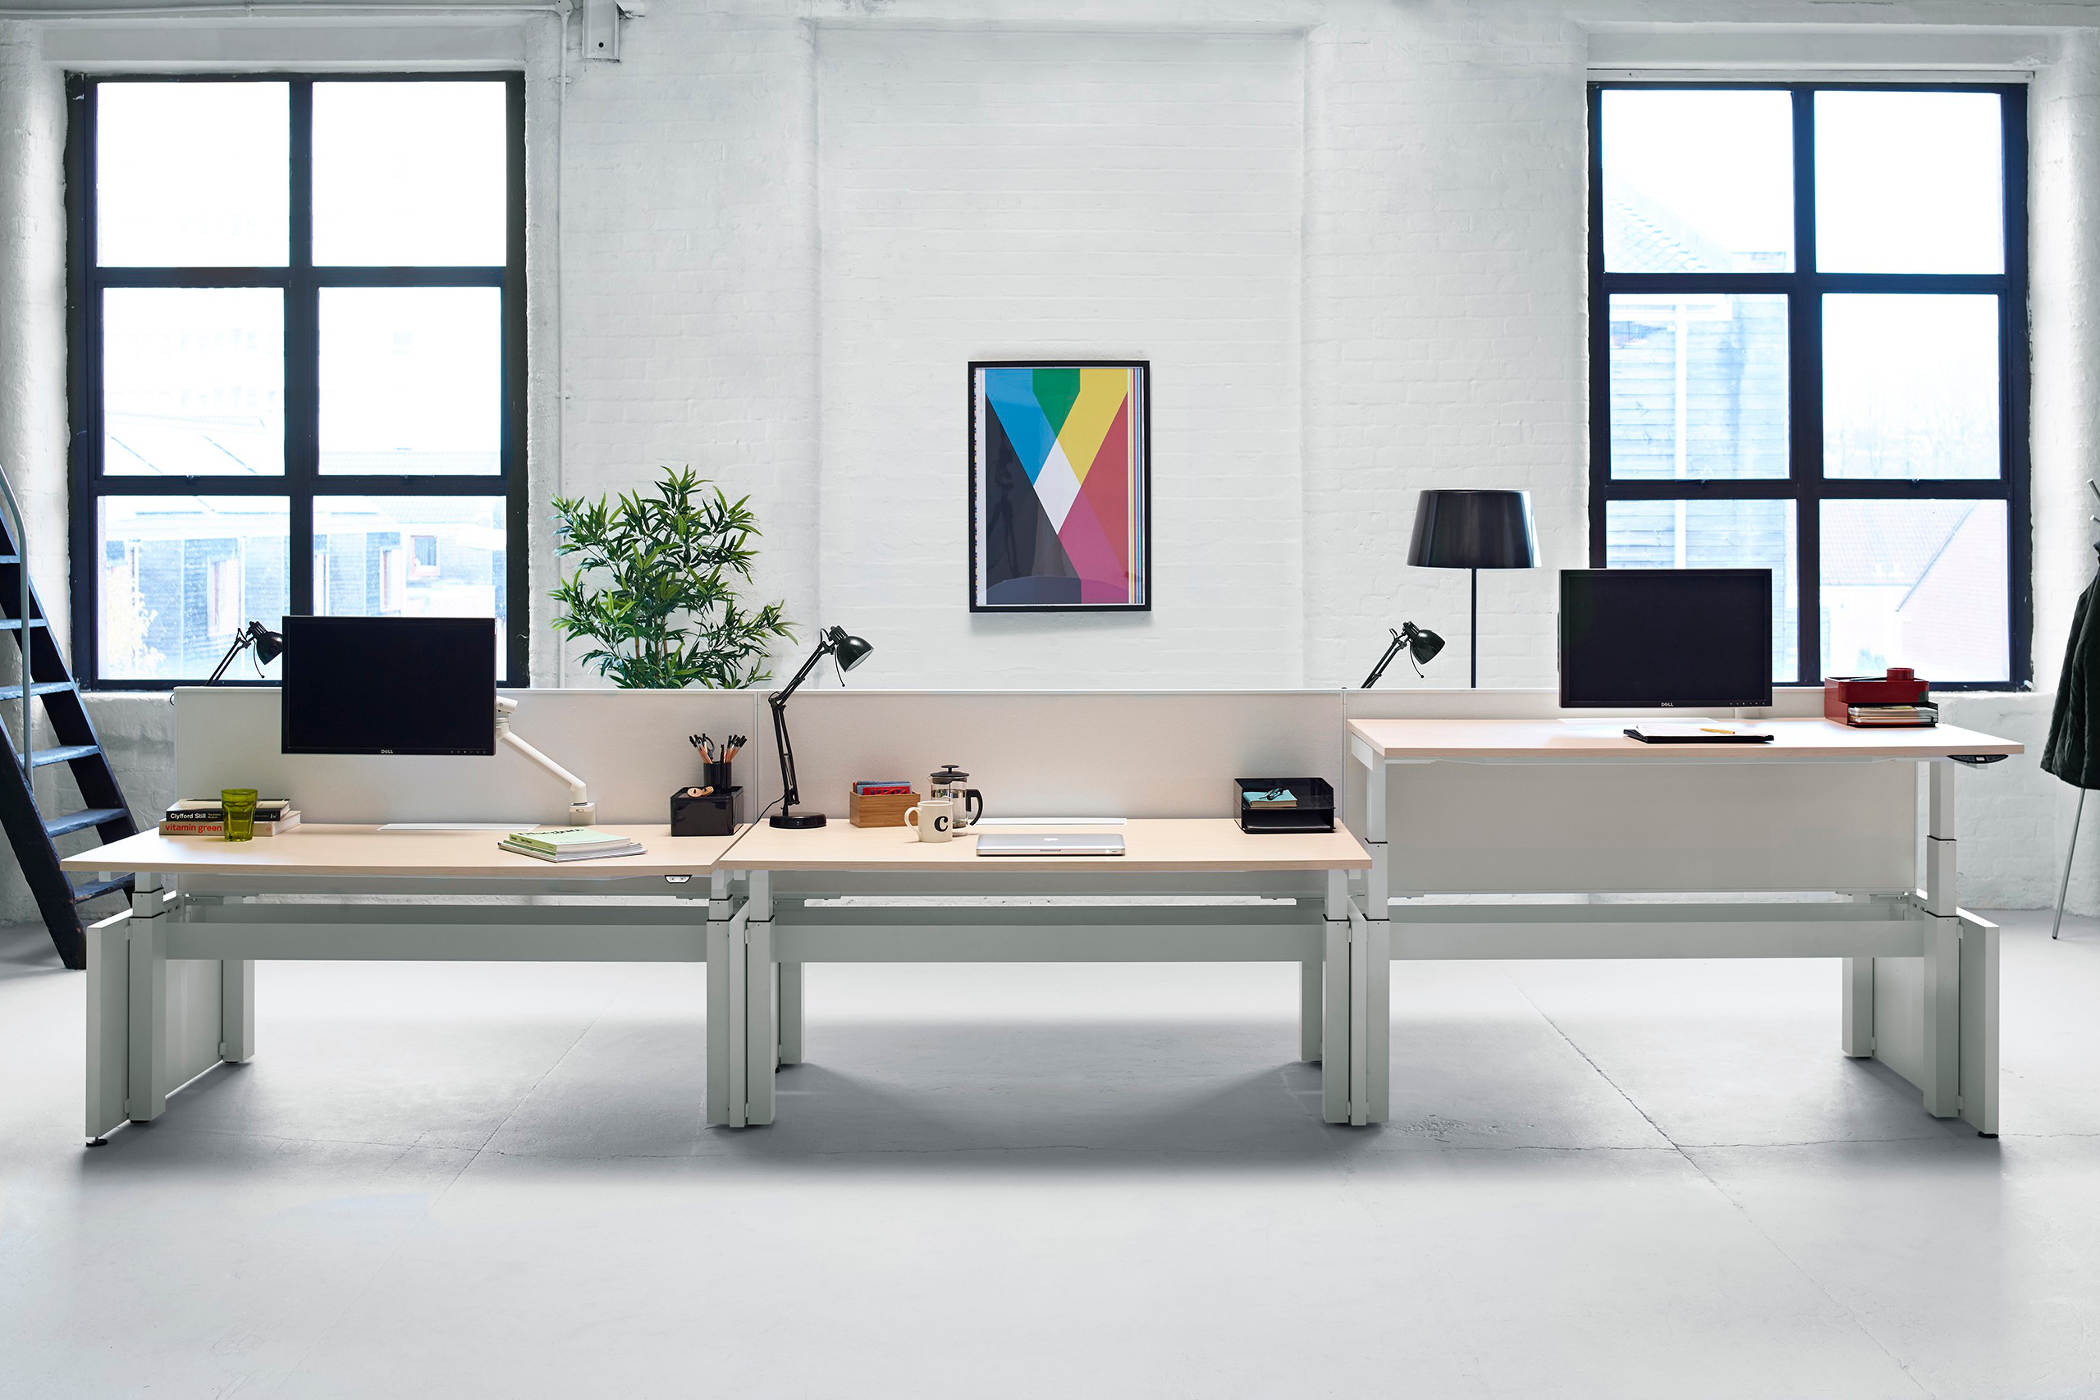 Herman miller layout studio exchange complete werkplekopstelling - Layouts hoogte ...